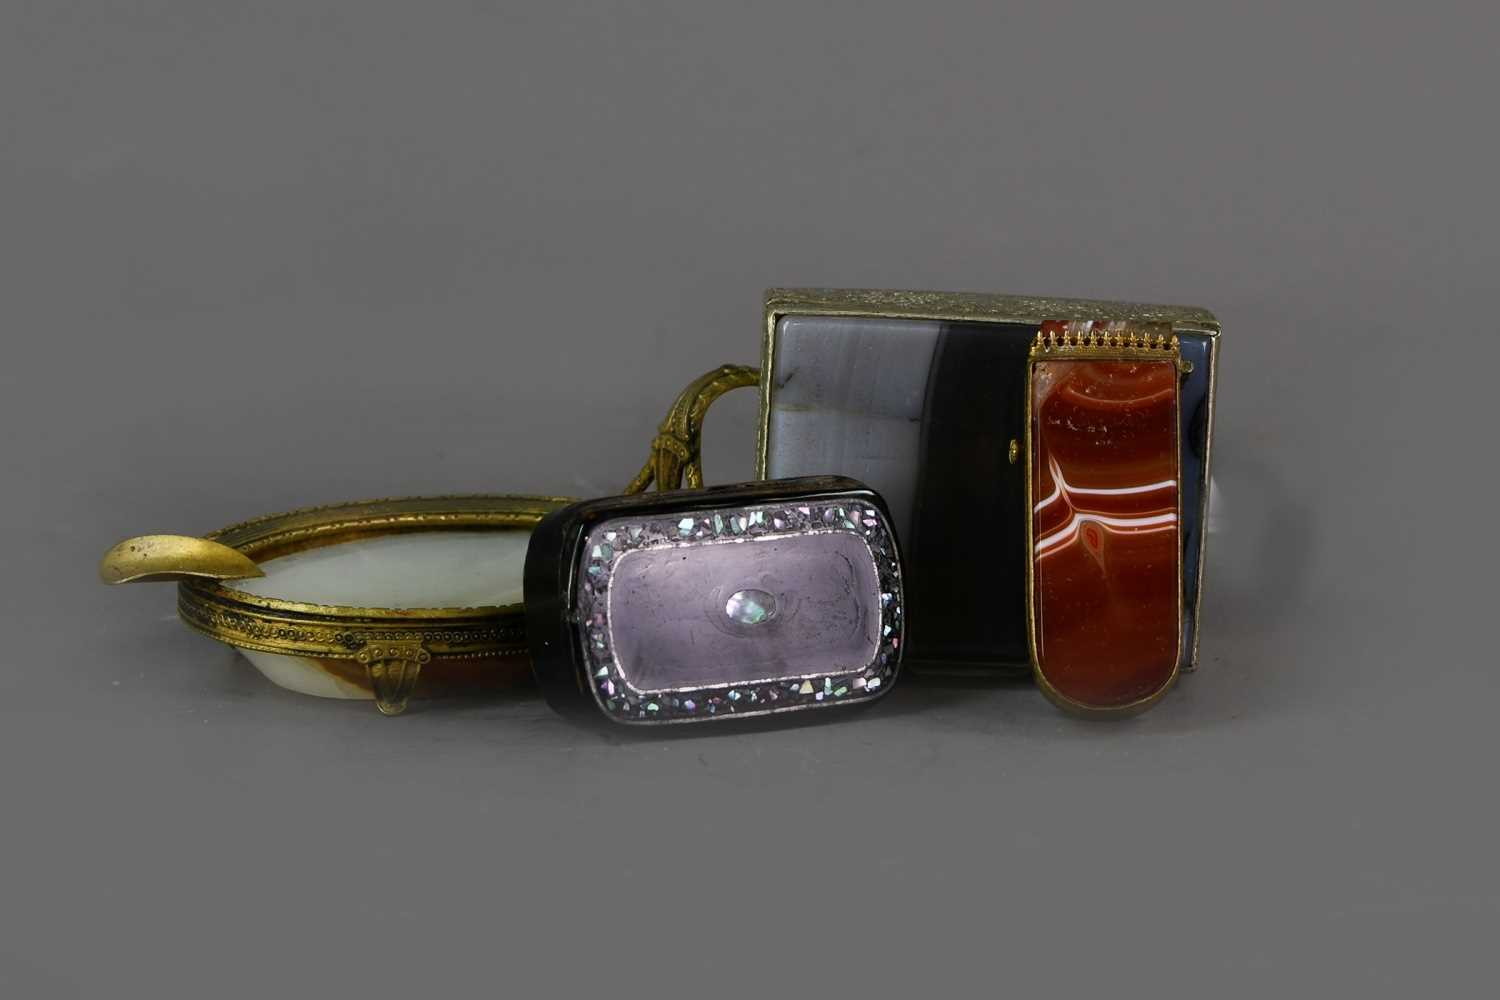 Lot 41 - AN EARLY 20TH CENTURY BRASS MOUNTED AGATE ASH DISH, ALONG WITH AN ETUI, TRINKET BOX AND SNUFF BOX